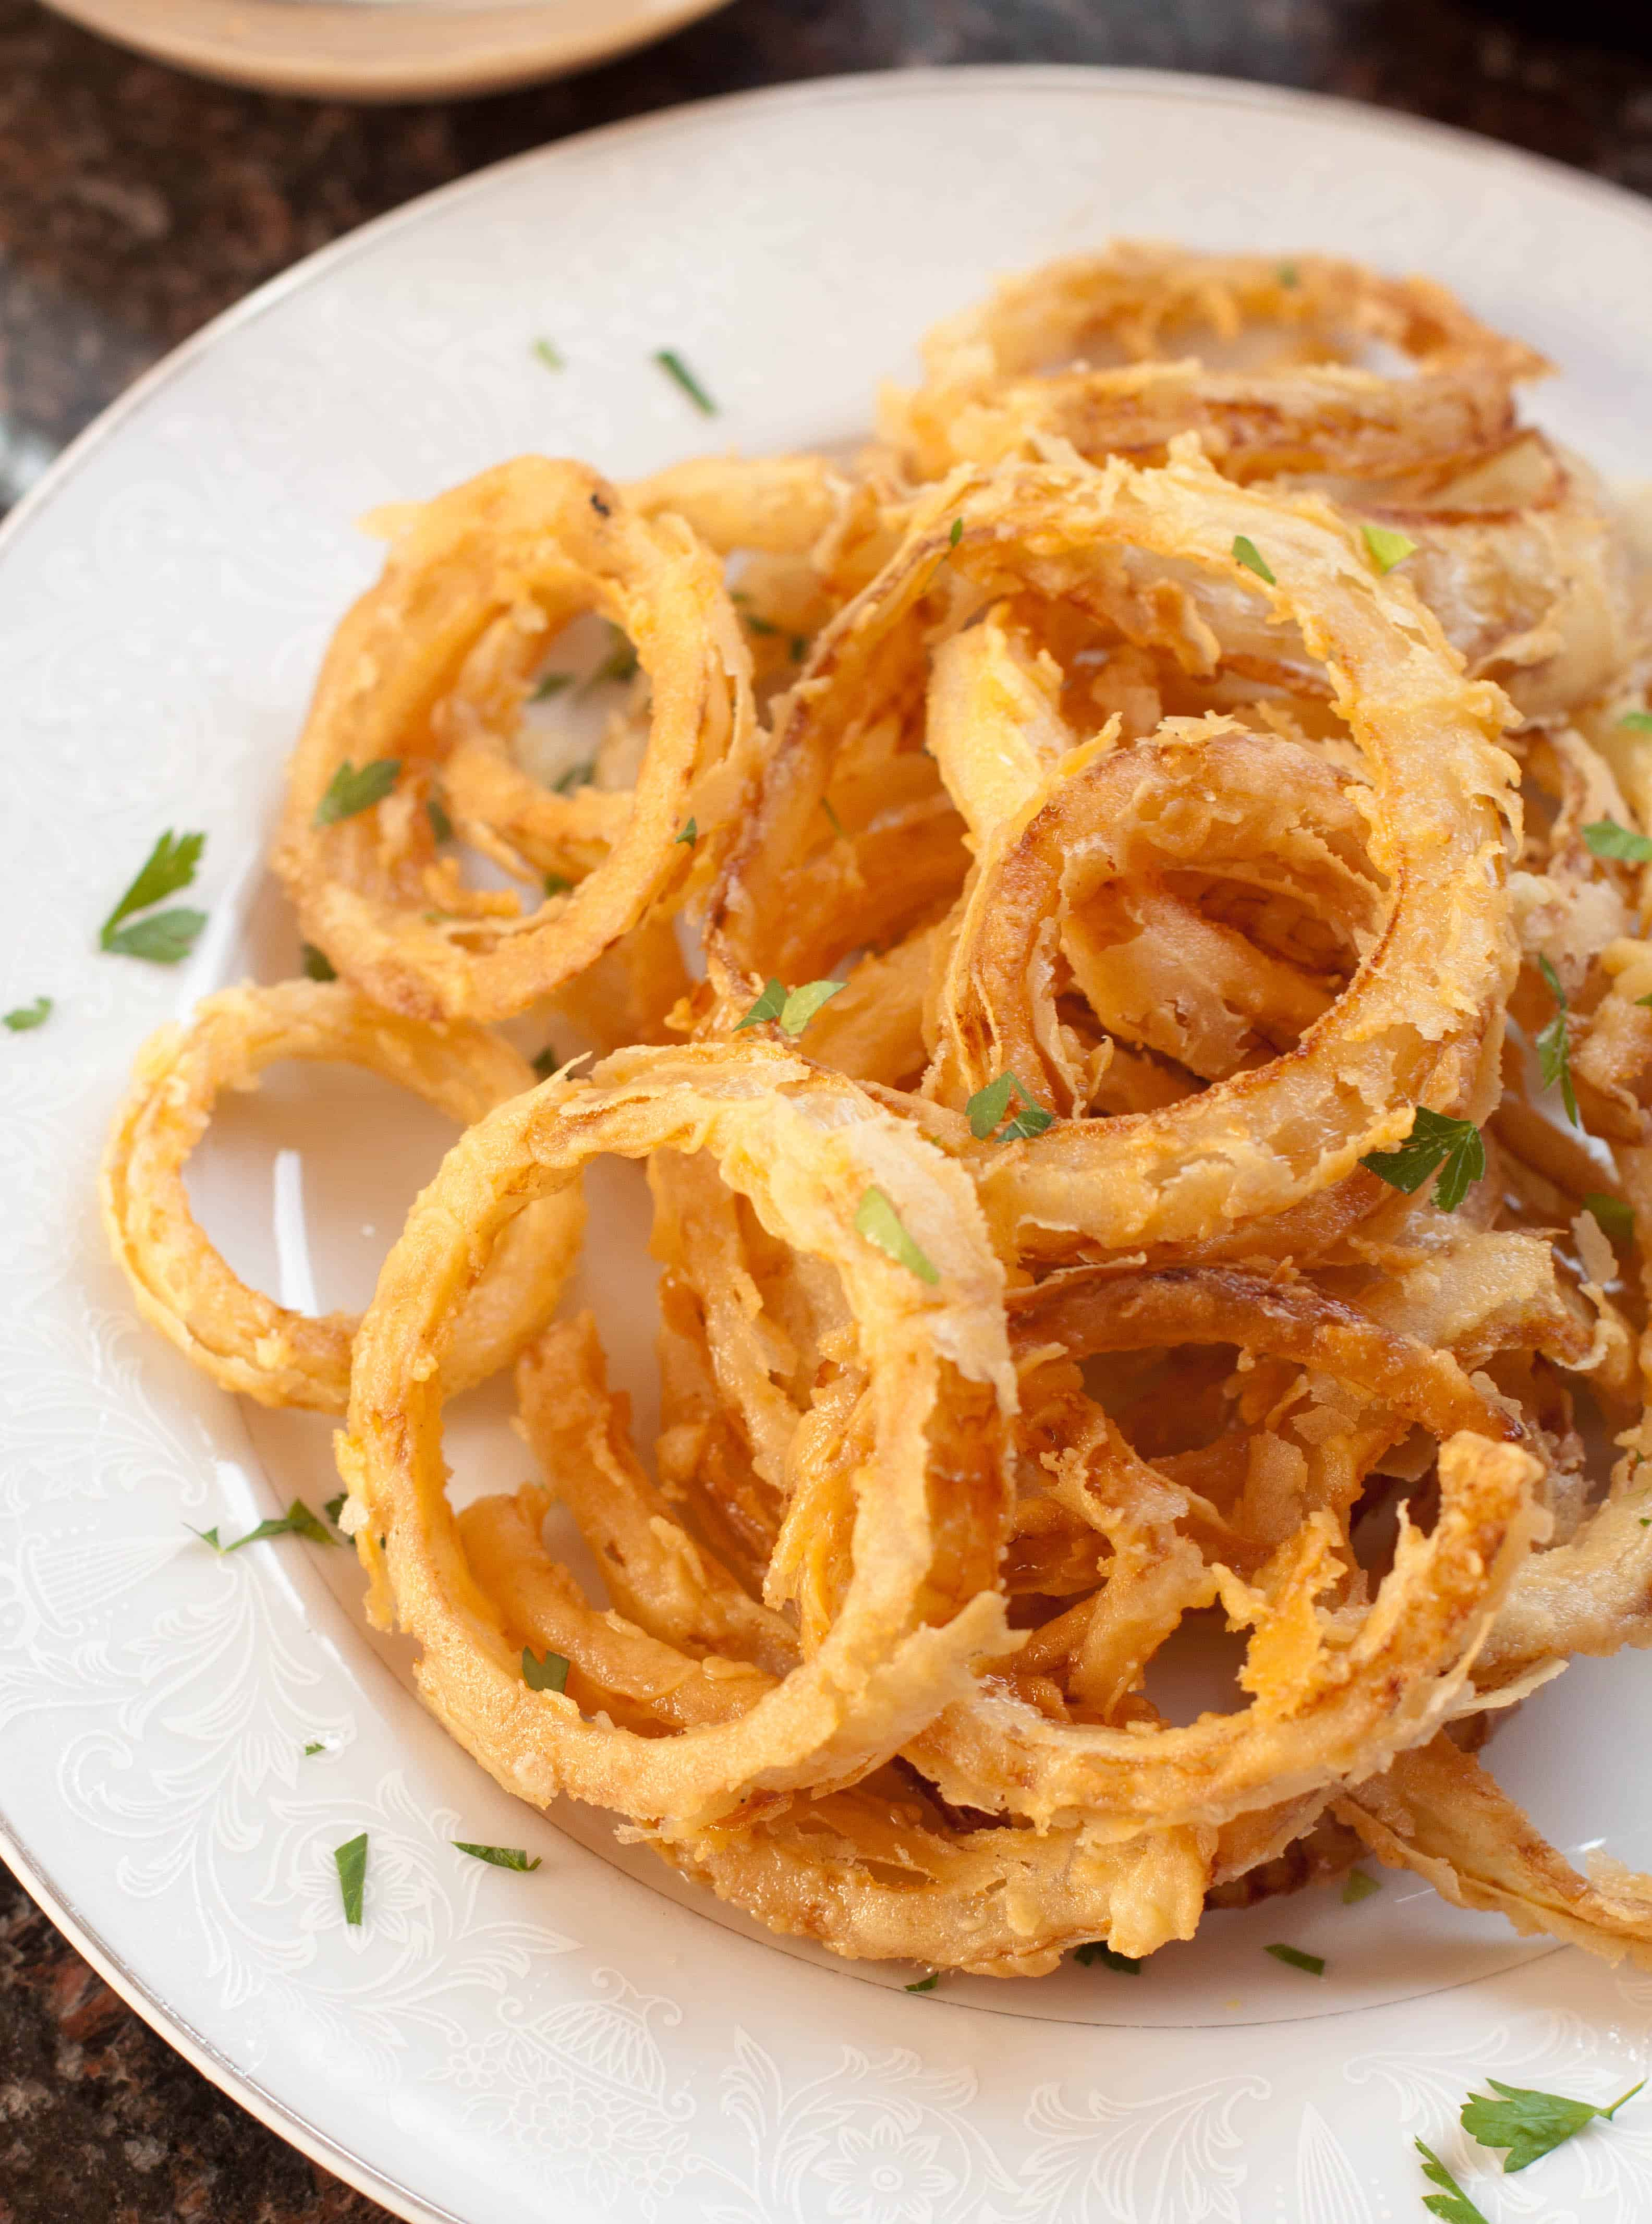 How Do I Make Onion Rings From Scratch